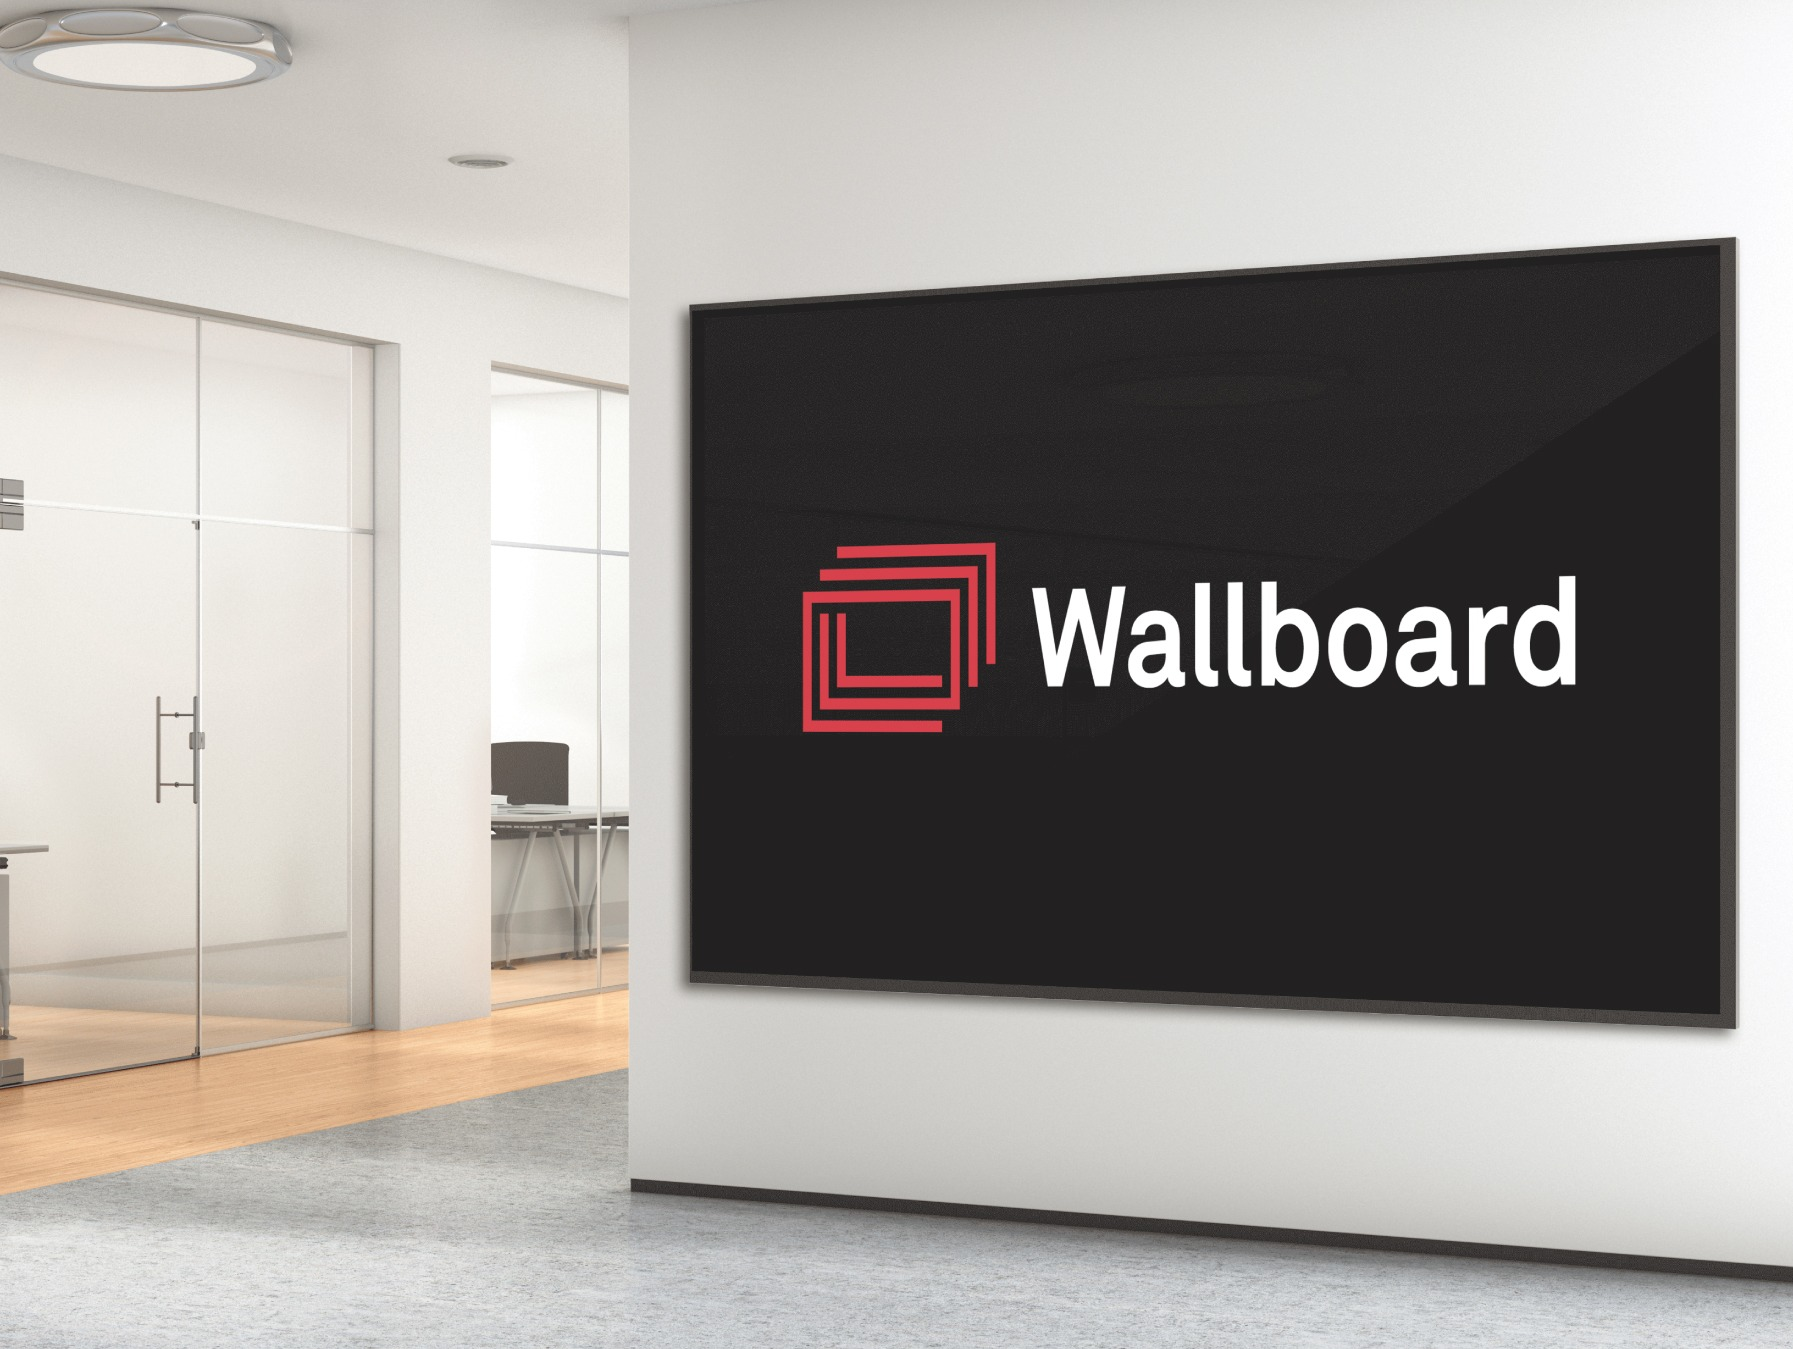 The 5 Most Important Benefits of Digital Signage